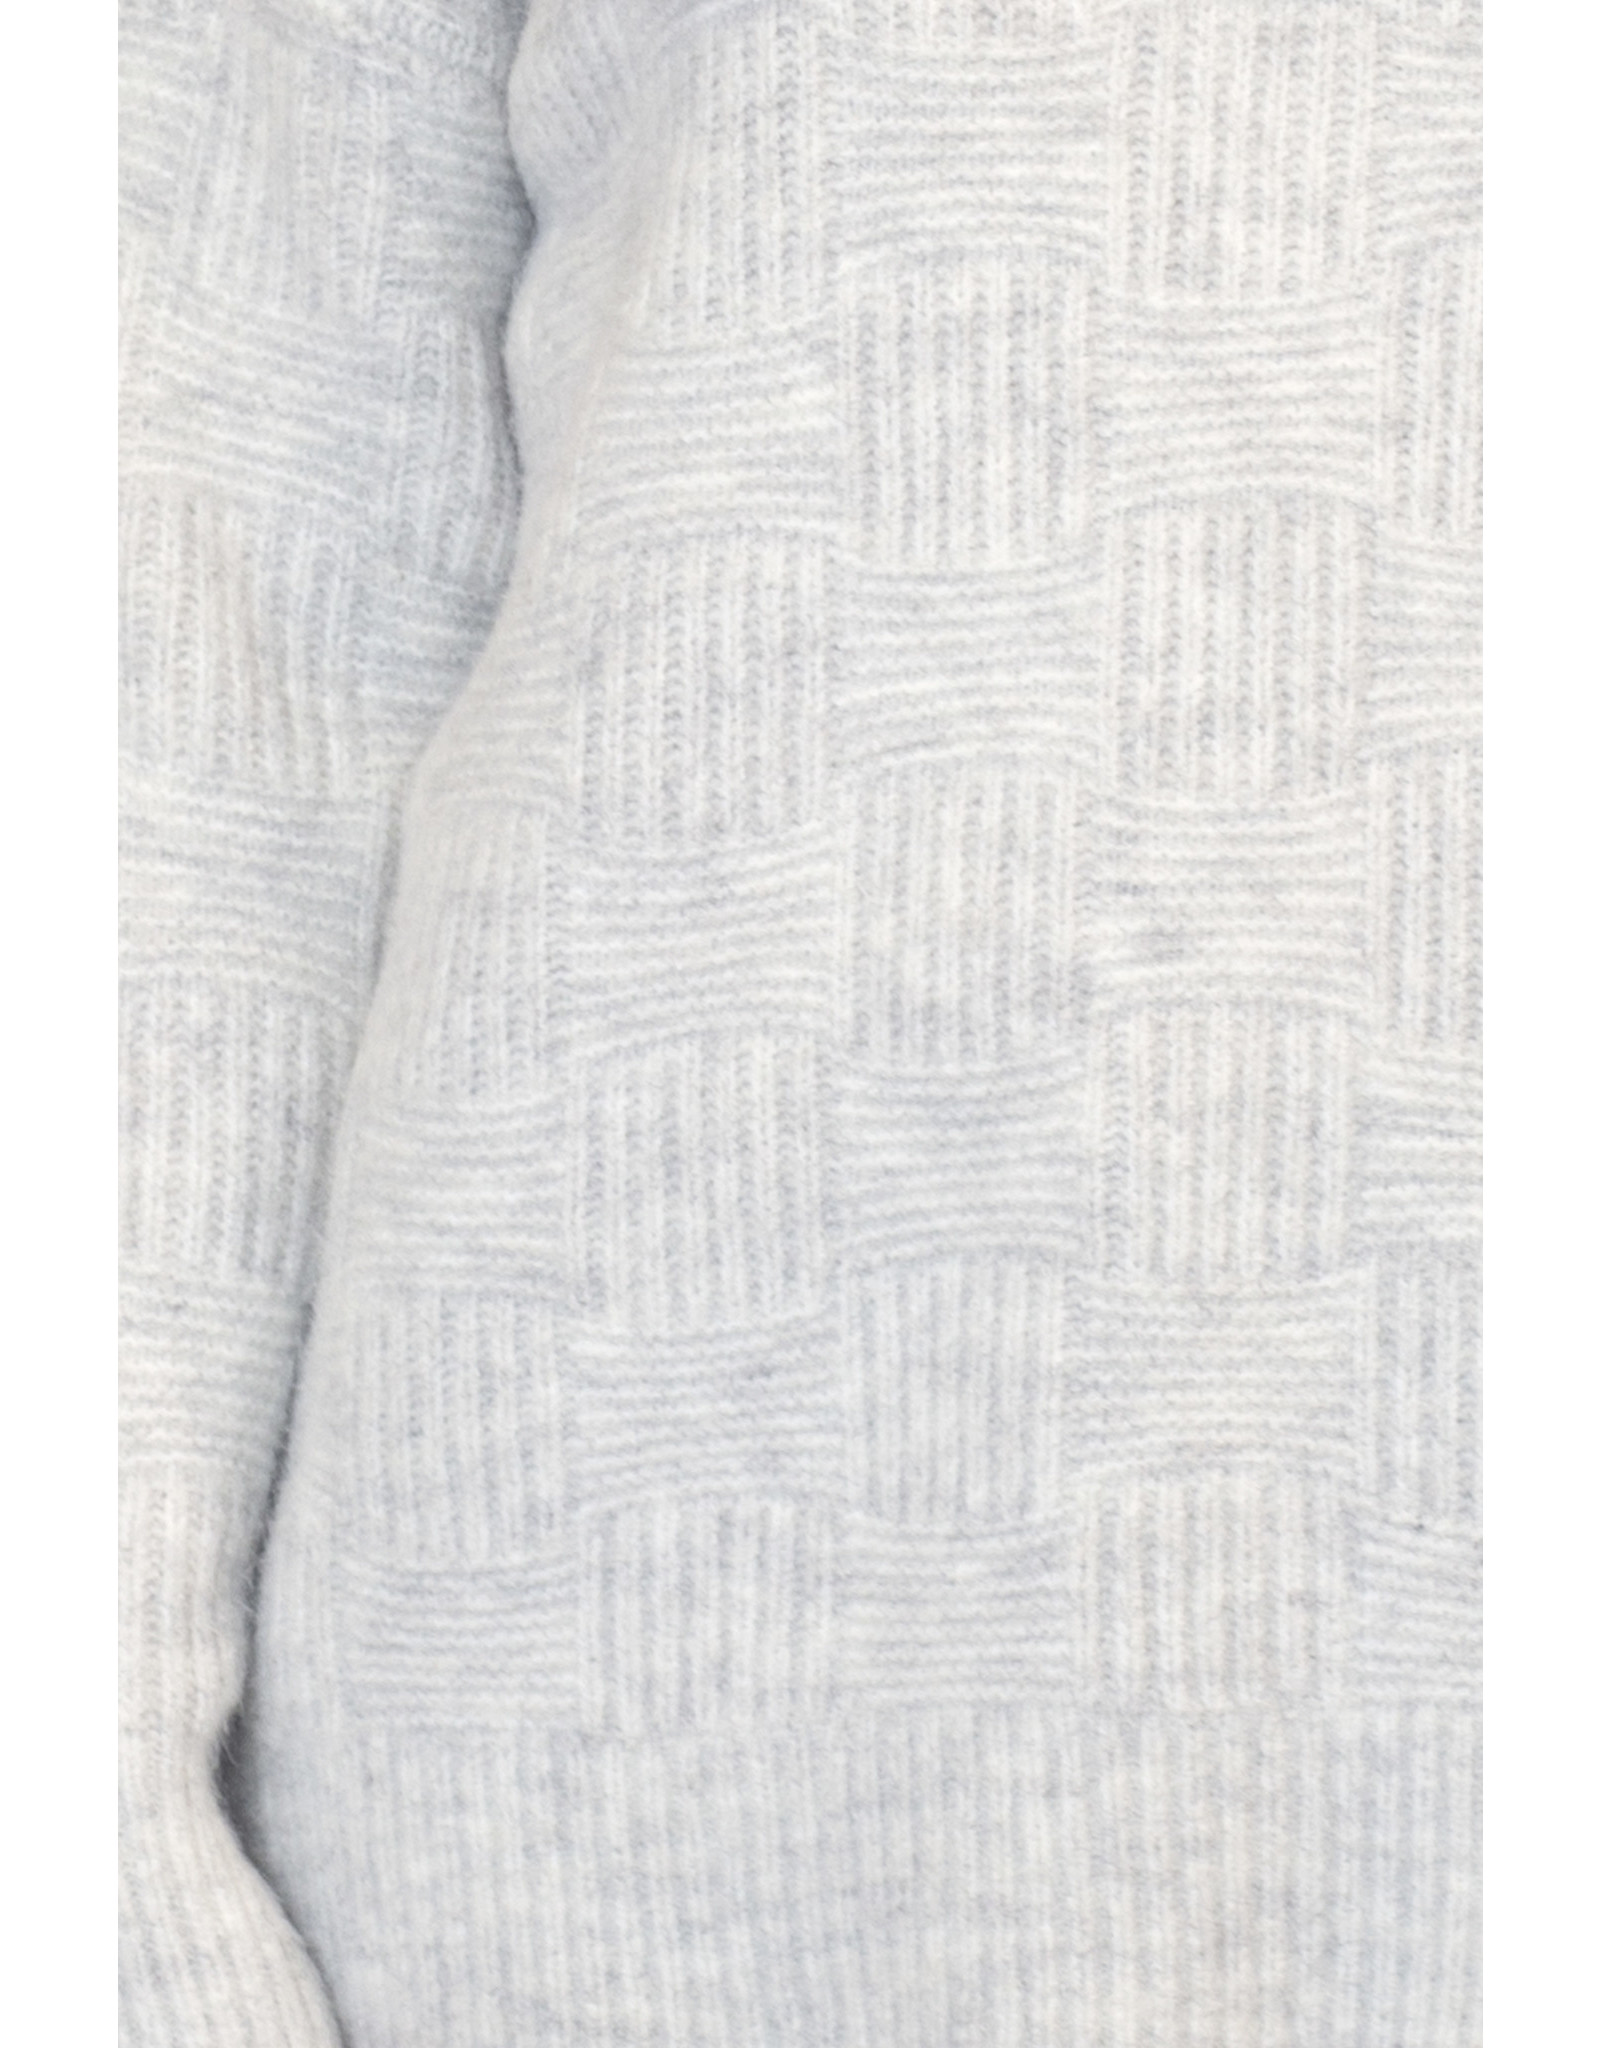 Lyla & Luxe Cosmo Mockneck Ribbed Sweater